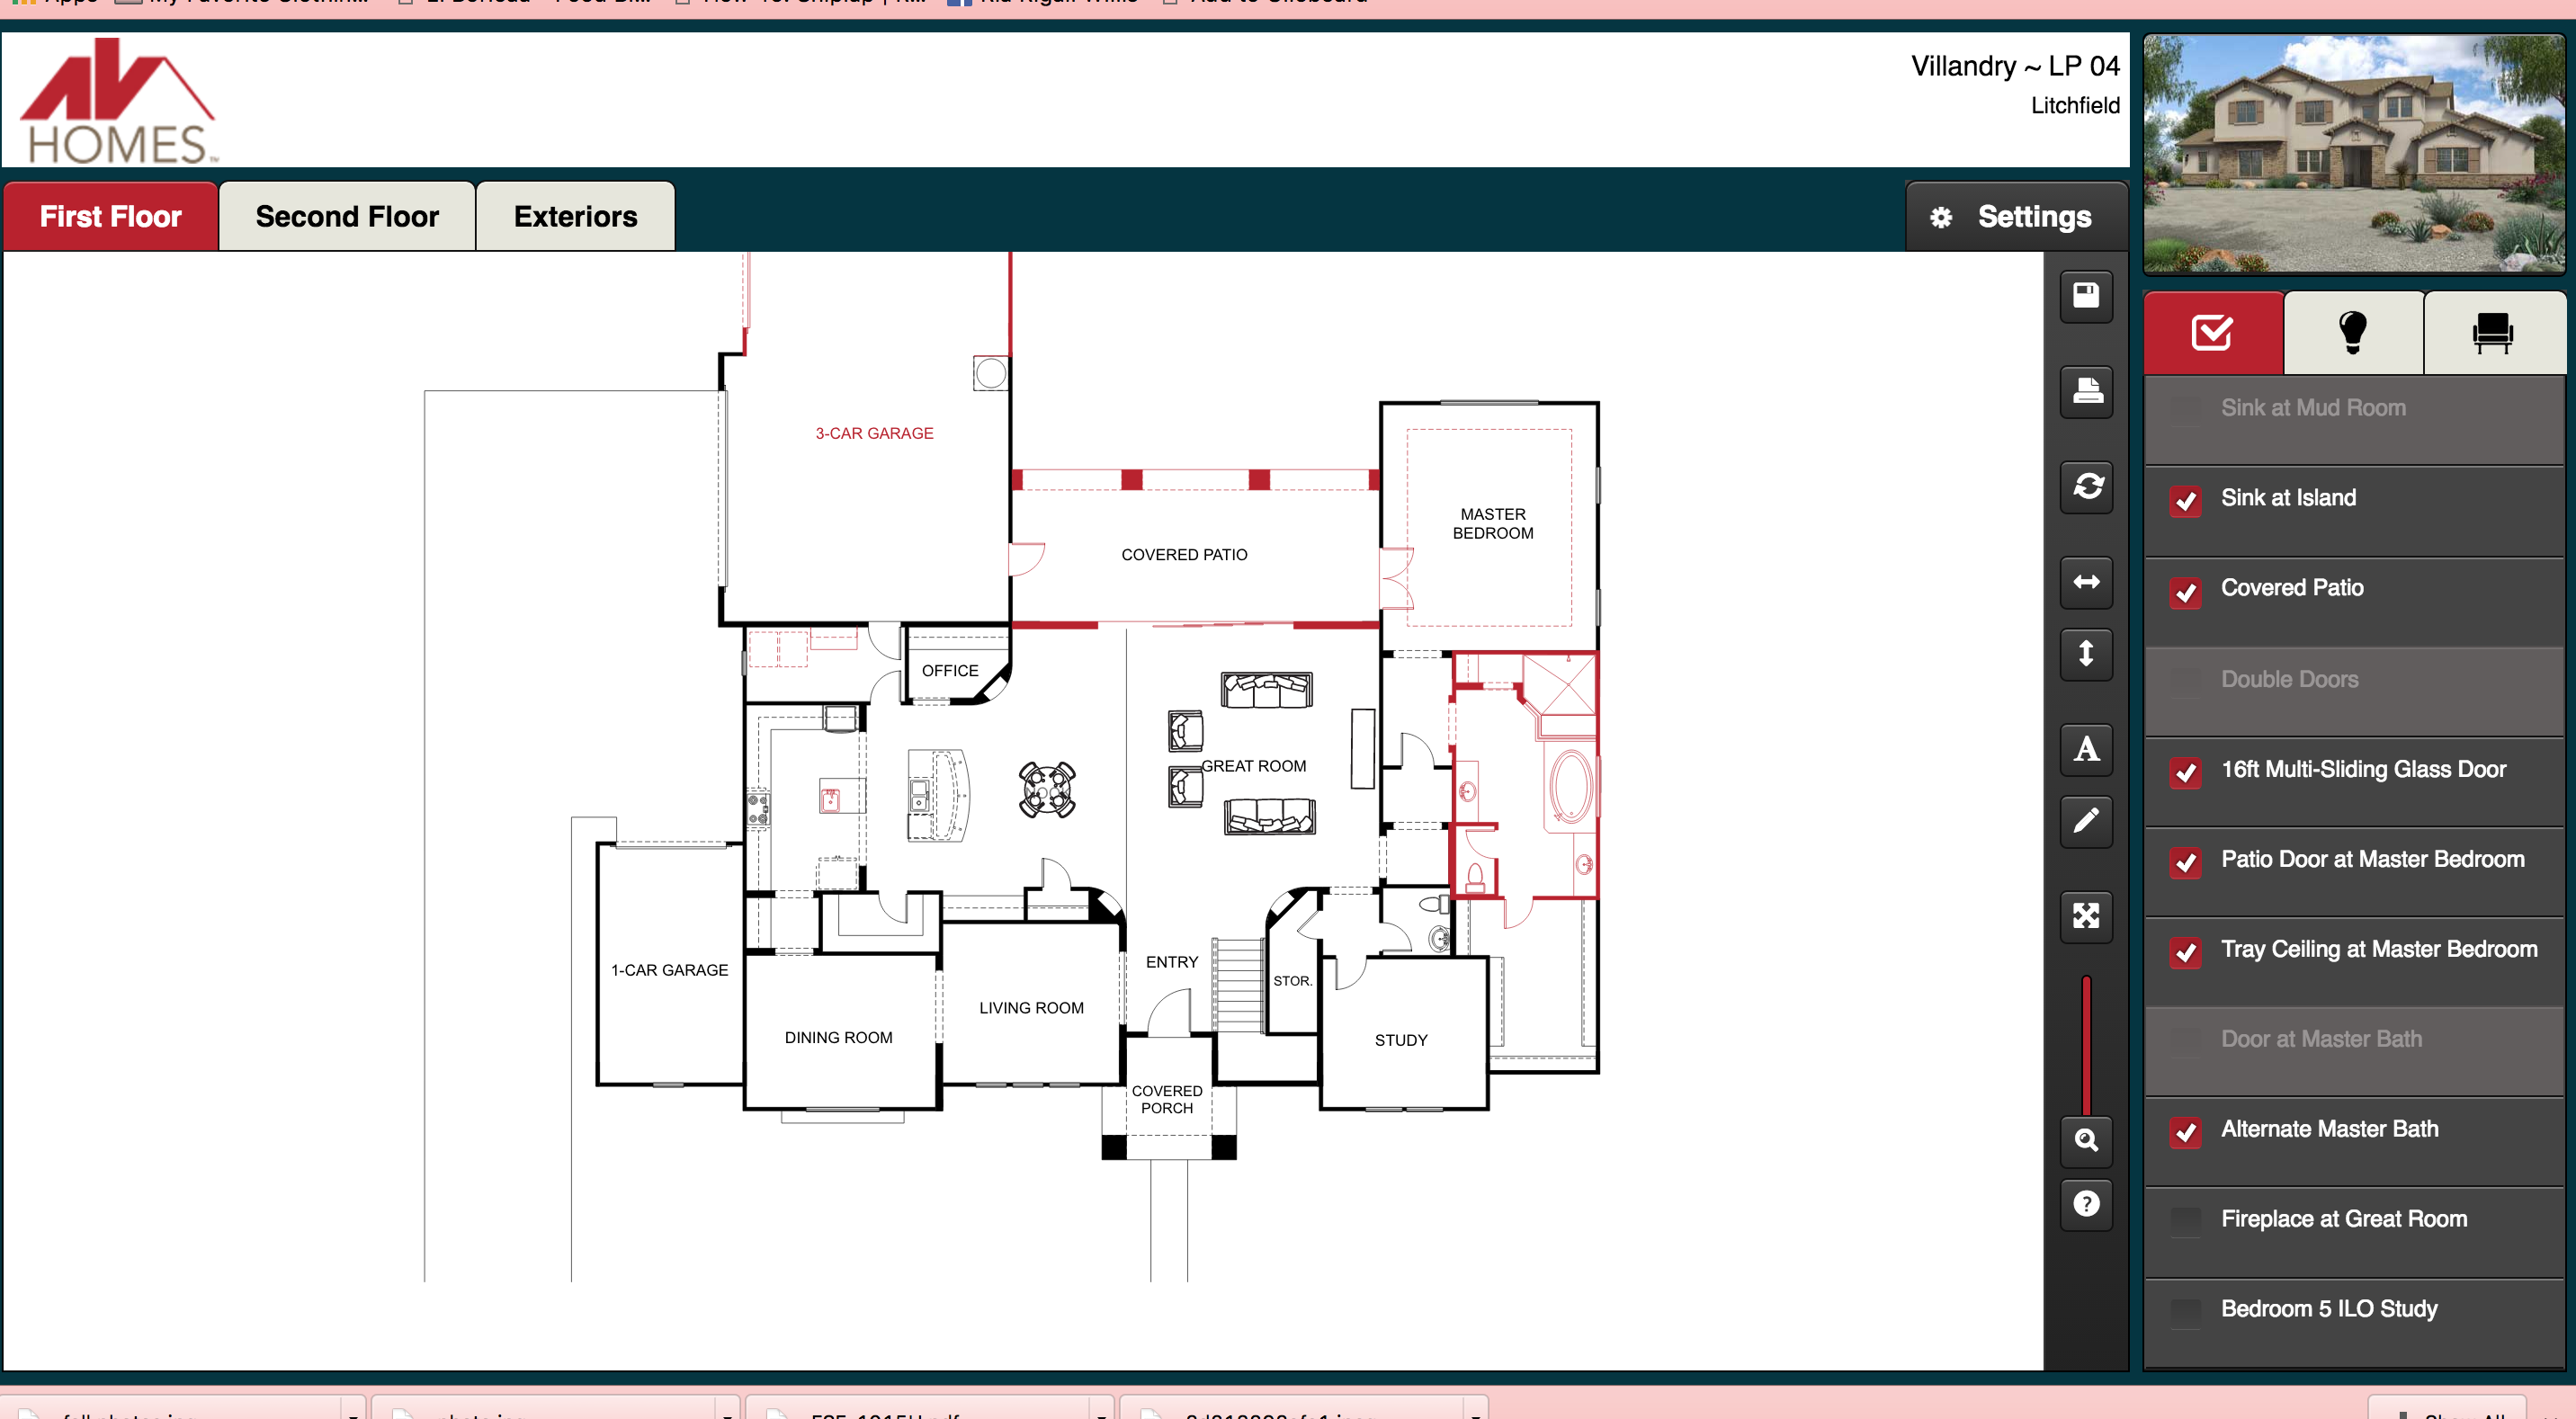 Av Homes Villandry floorpan